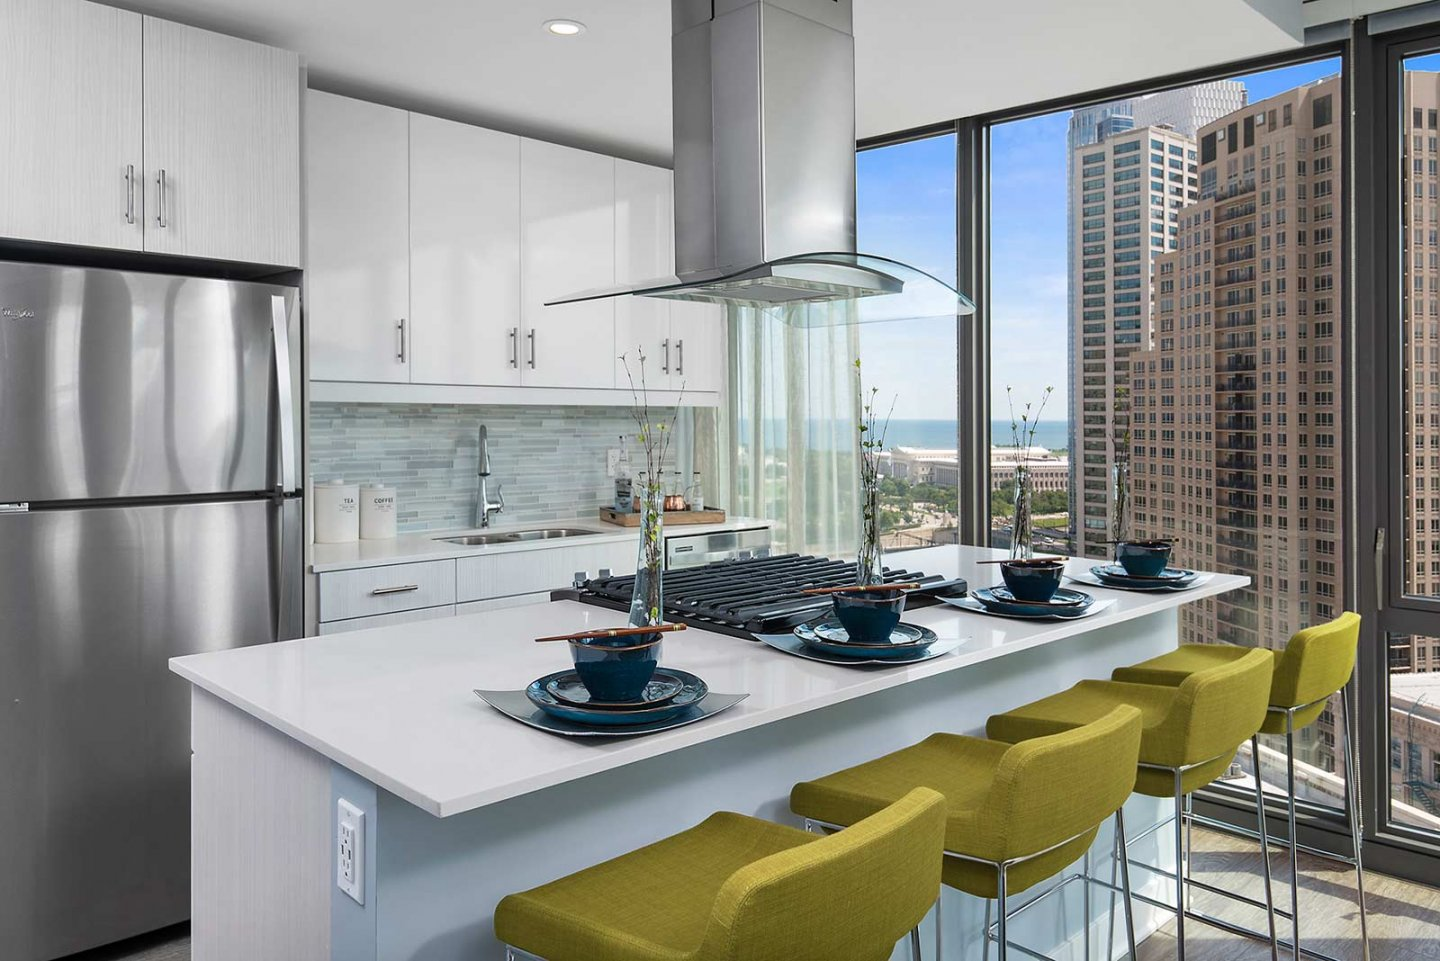 luxury kicthen and island at 1001 South State Apartments in the South Loop